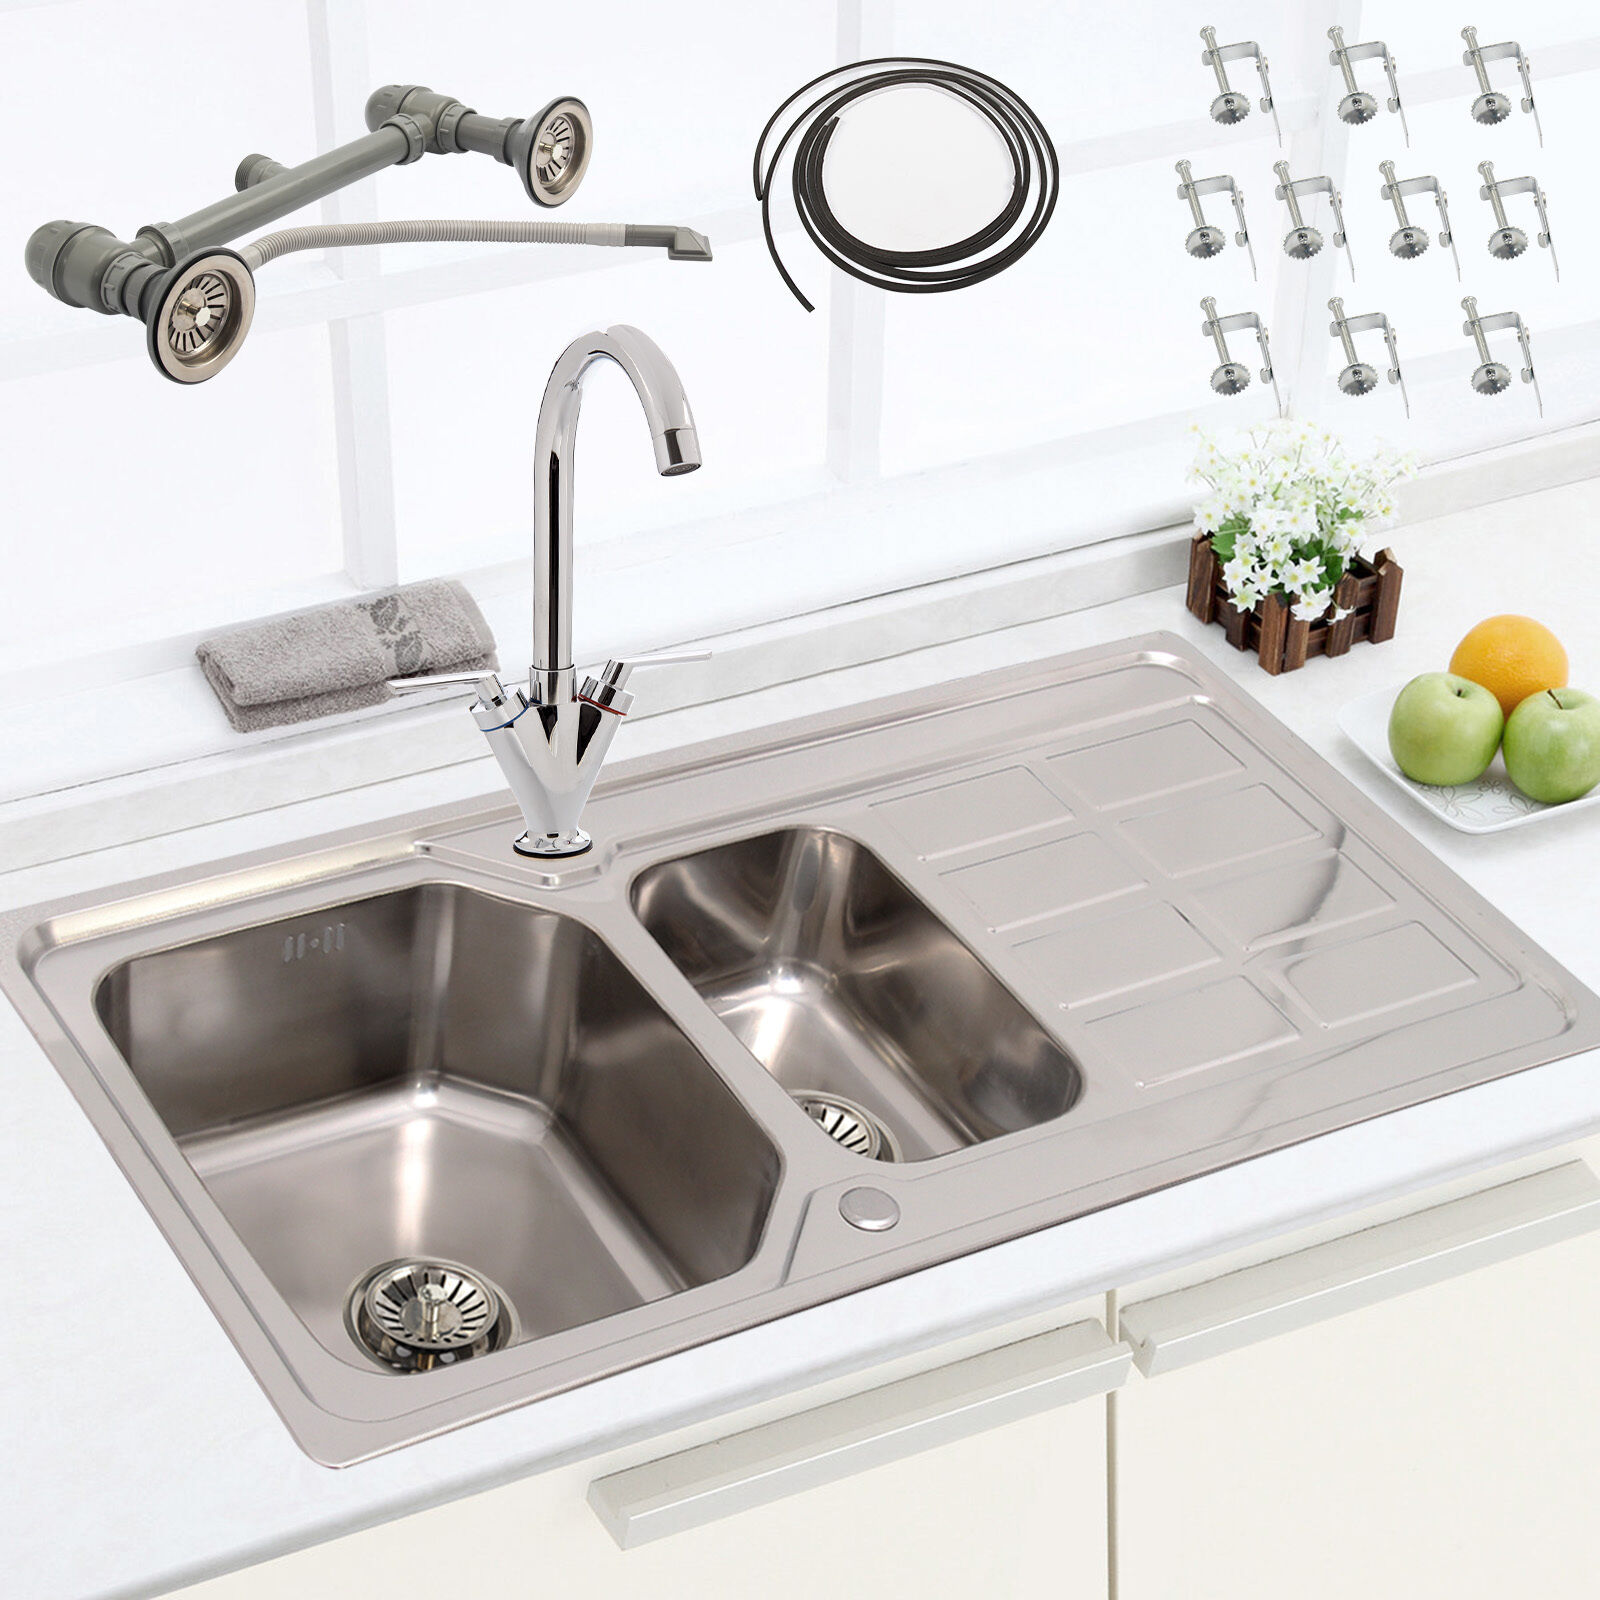 ... Bowl Stainless Steel Kitchen Sink Drainer Plumbing Kit + Taps Waste